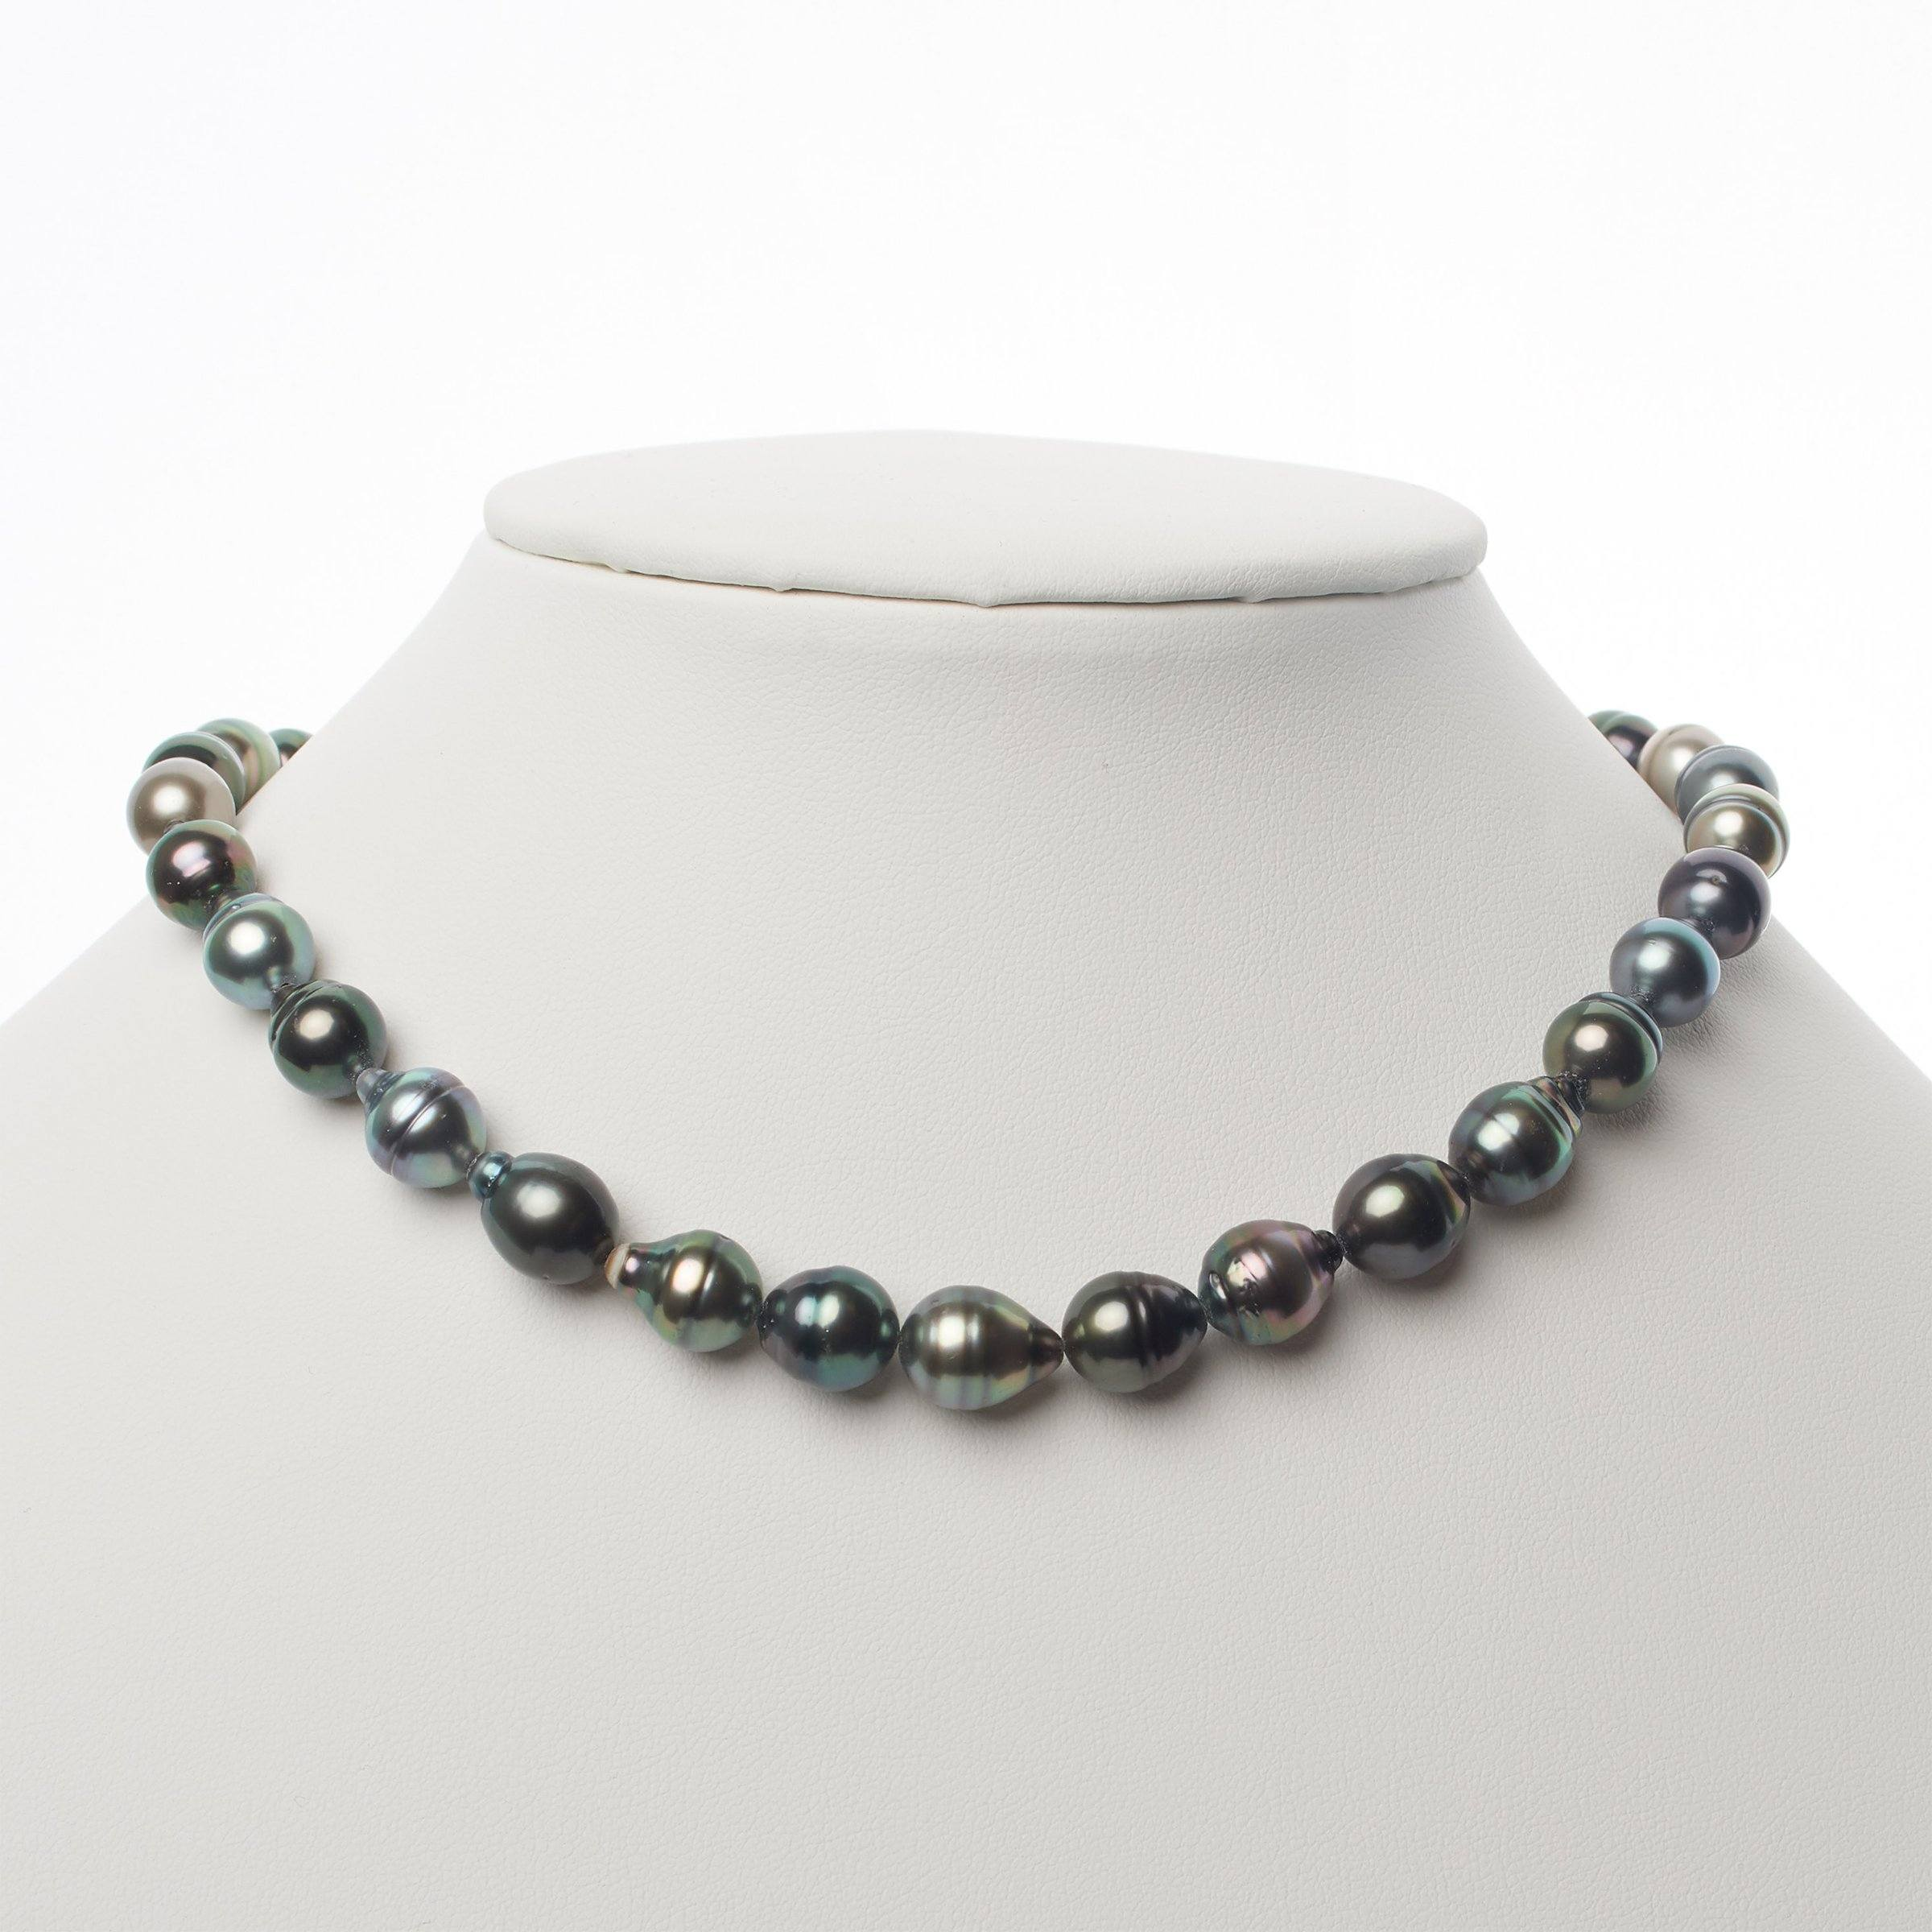 8.3-10.3 mm AAA Tahitian Baroque Pearl Necklace